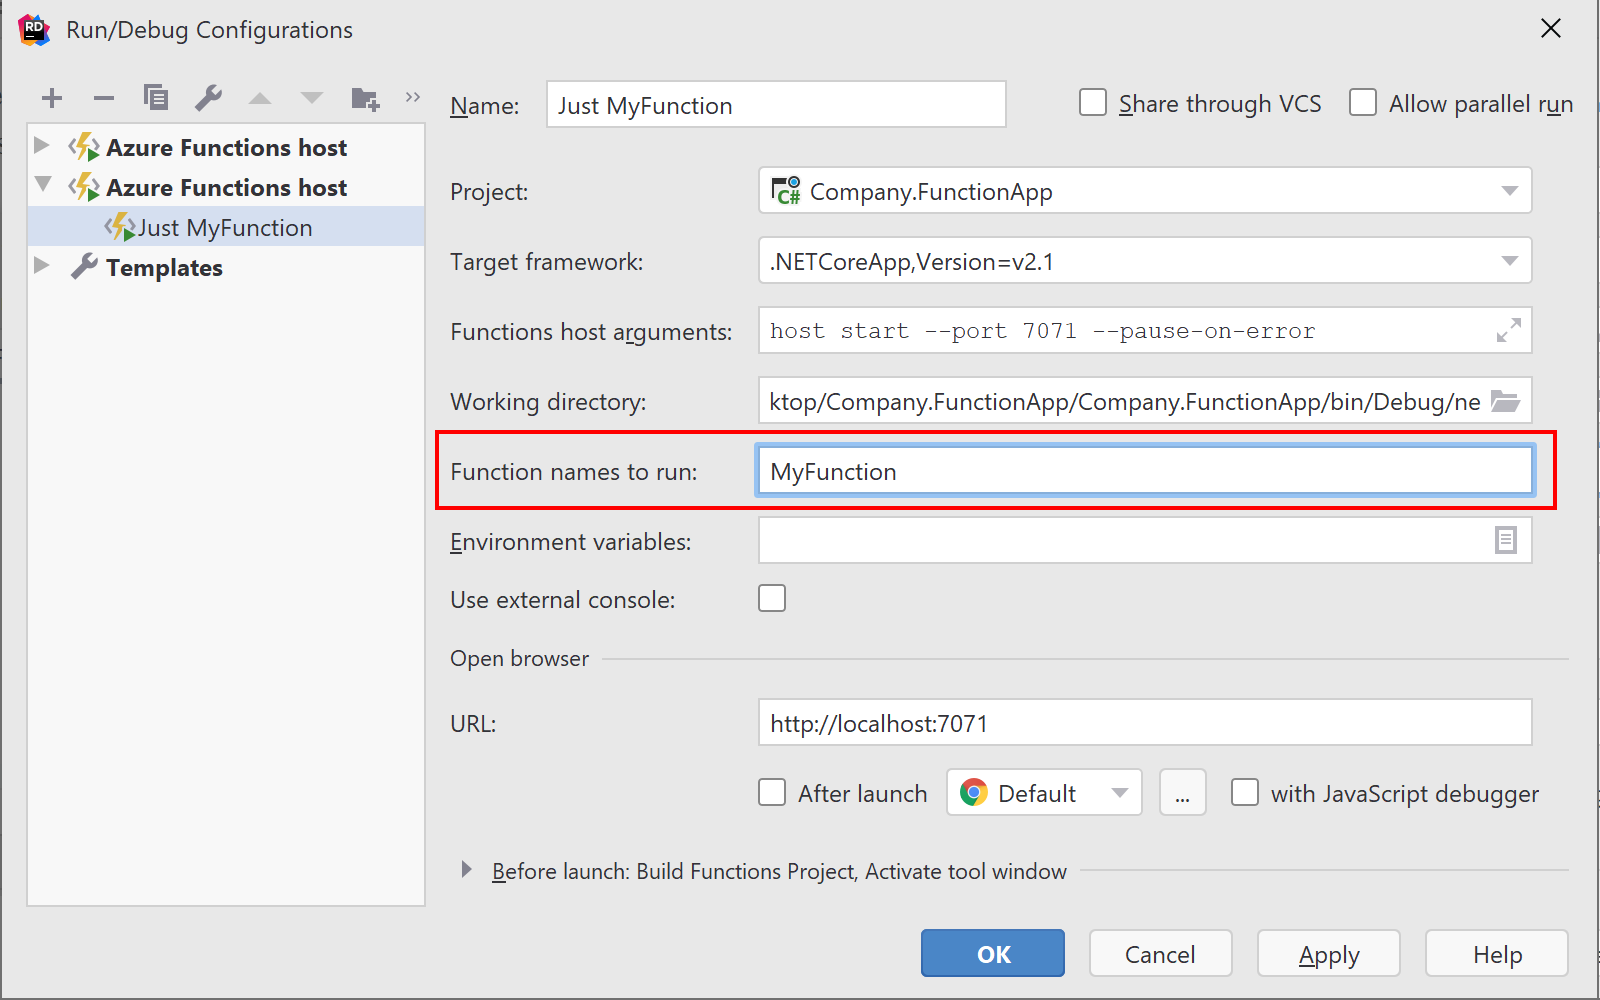 Specify individual Azure Function(s) to run in configuration